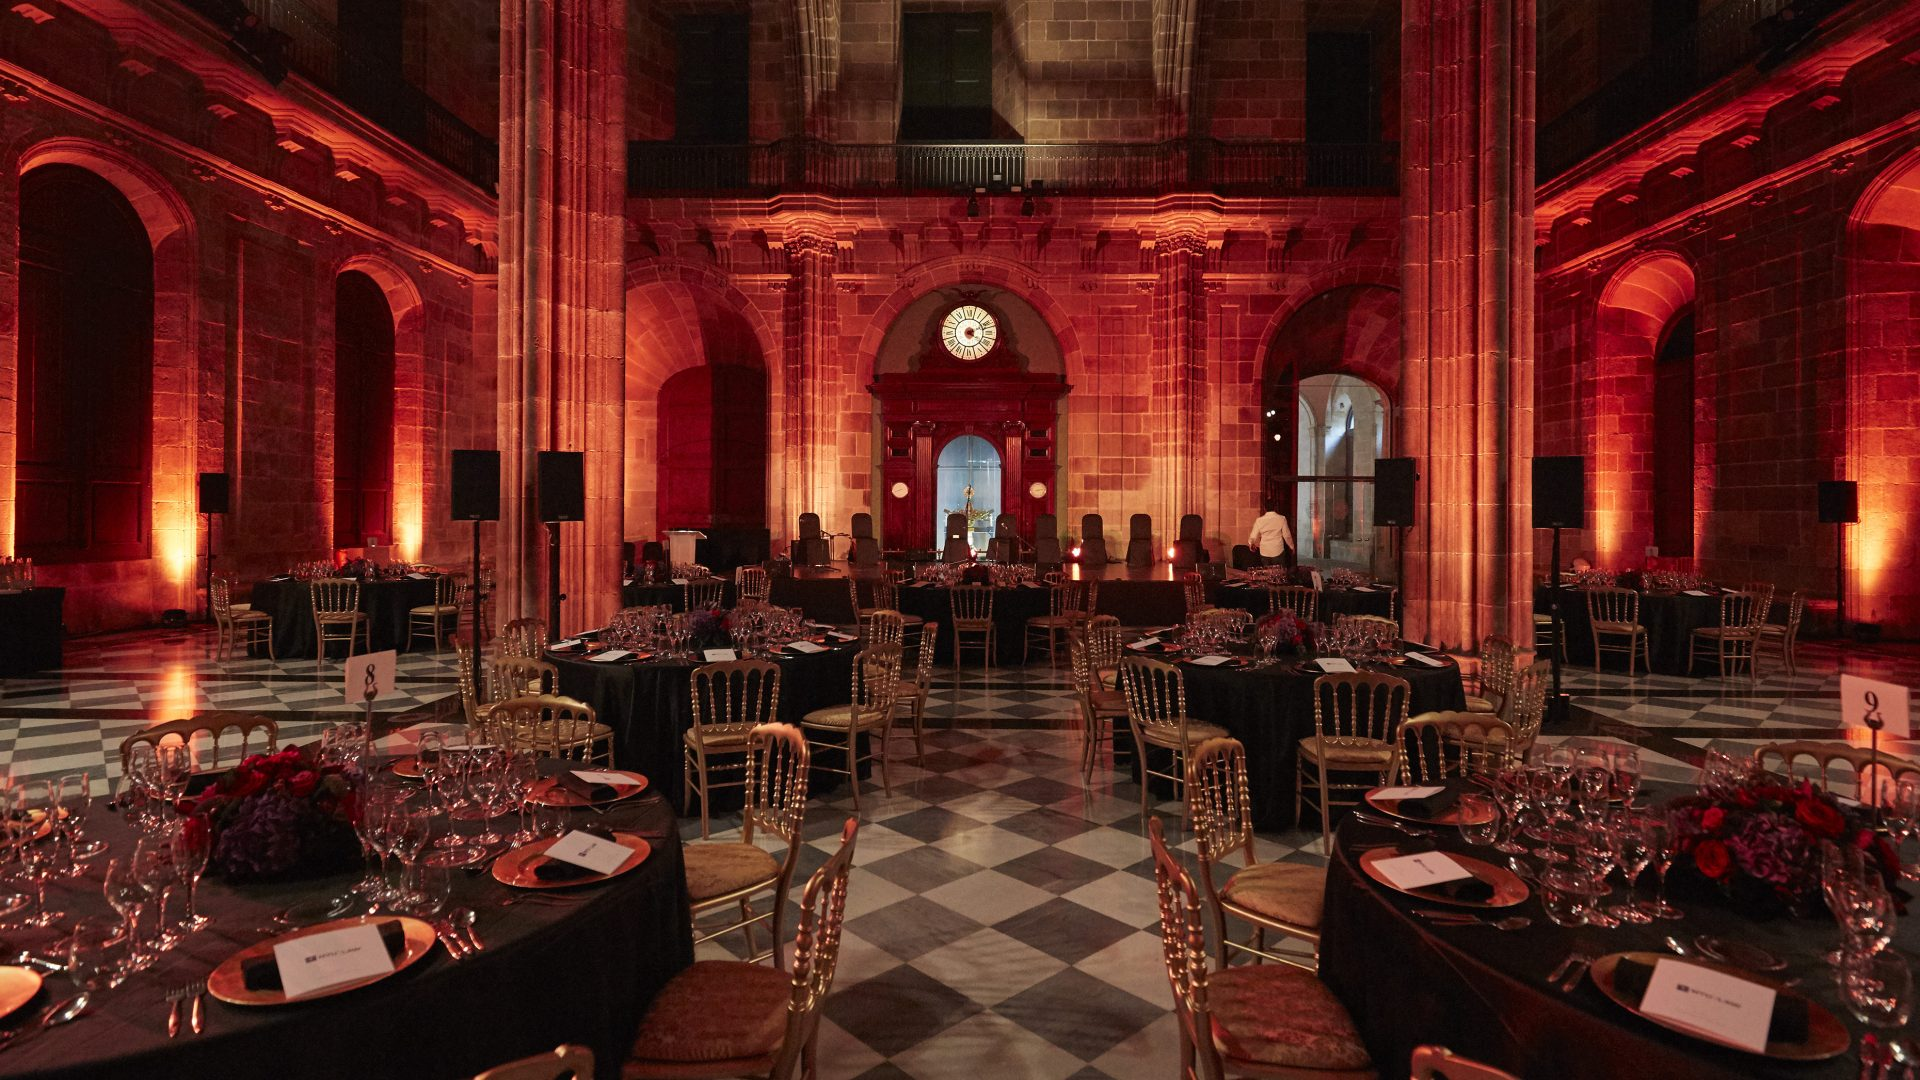 Gala dinner setup in a historical event venue in Barcelona